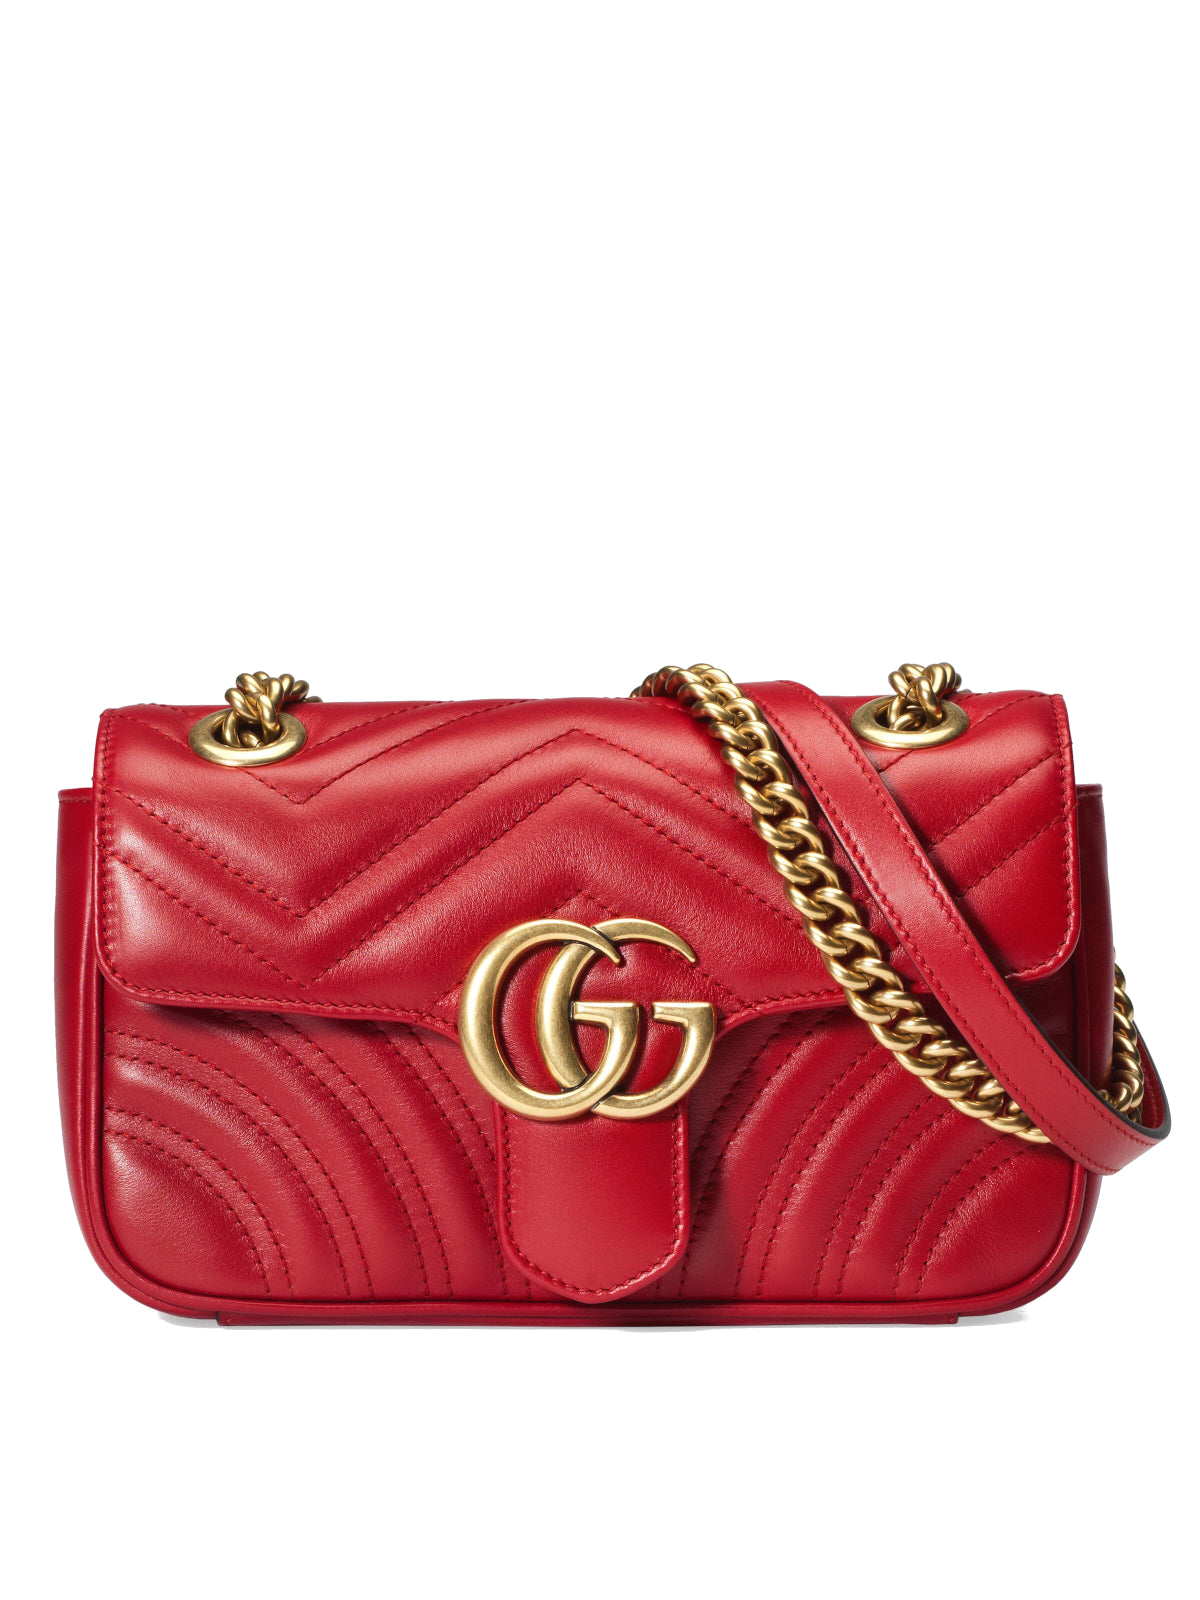 GG MARMONT MATELASSE`MINI BAG